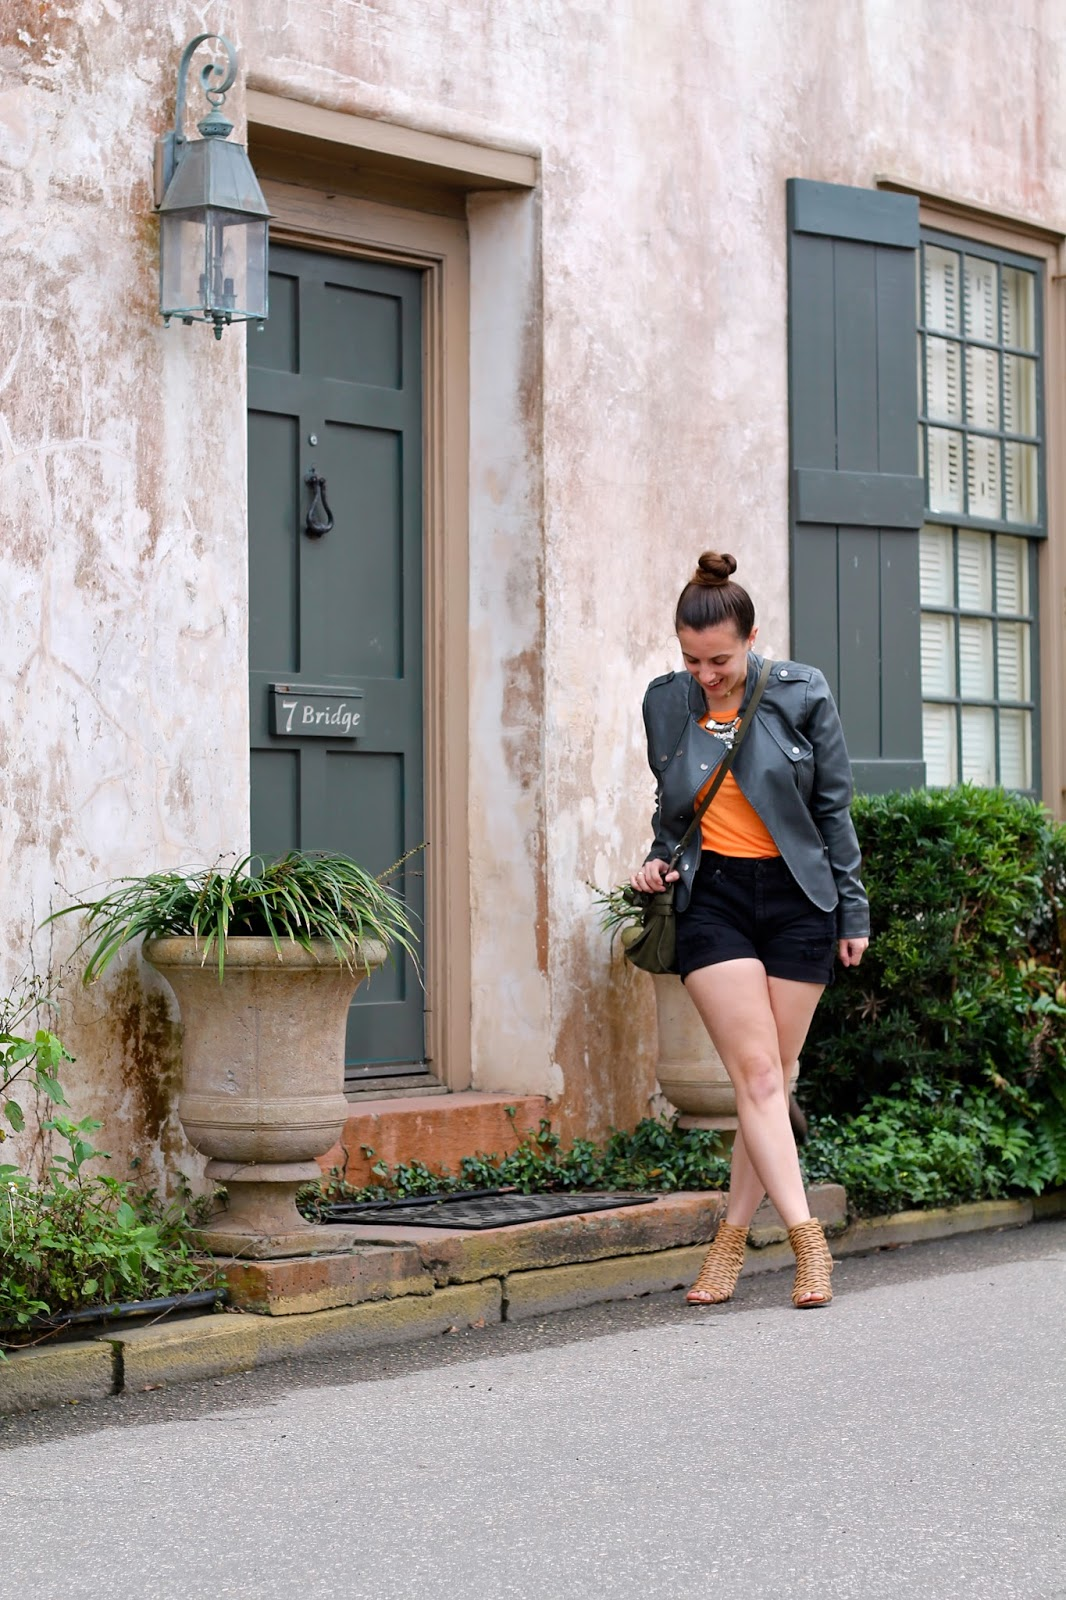 urban outfitters, Tracy Reese, GAP, jeffrey campbell, free jewelry, fashion, style, fashion blog, fashion blogger, style blog, style blogger, outfit ideas, fall fashion, ootd, what I wore, Miami fashion blogger